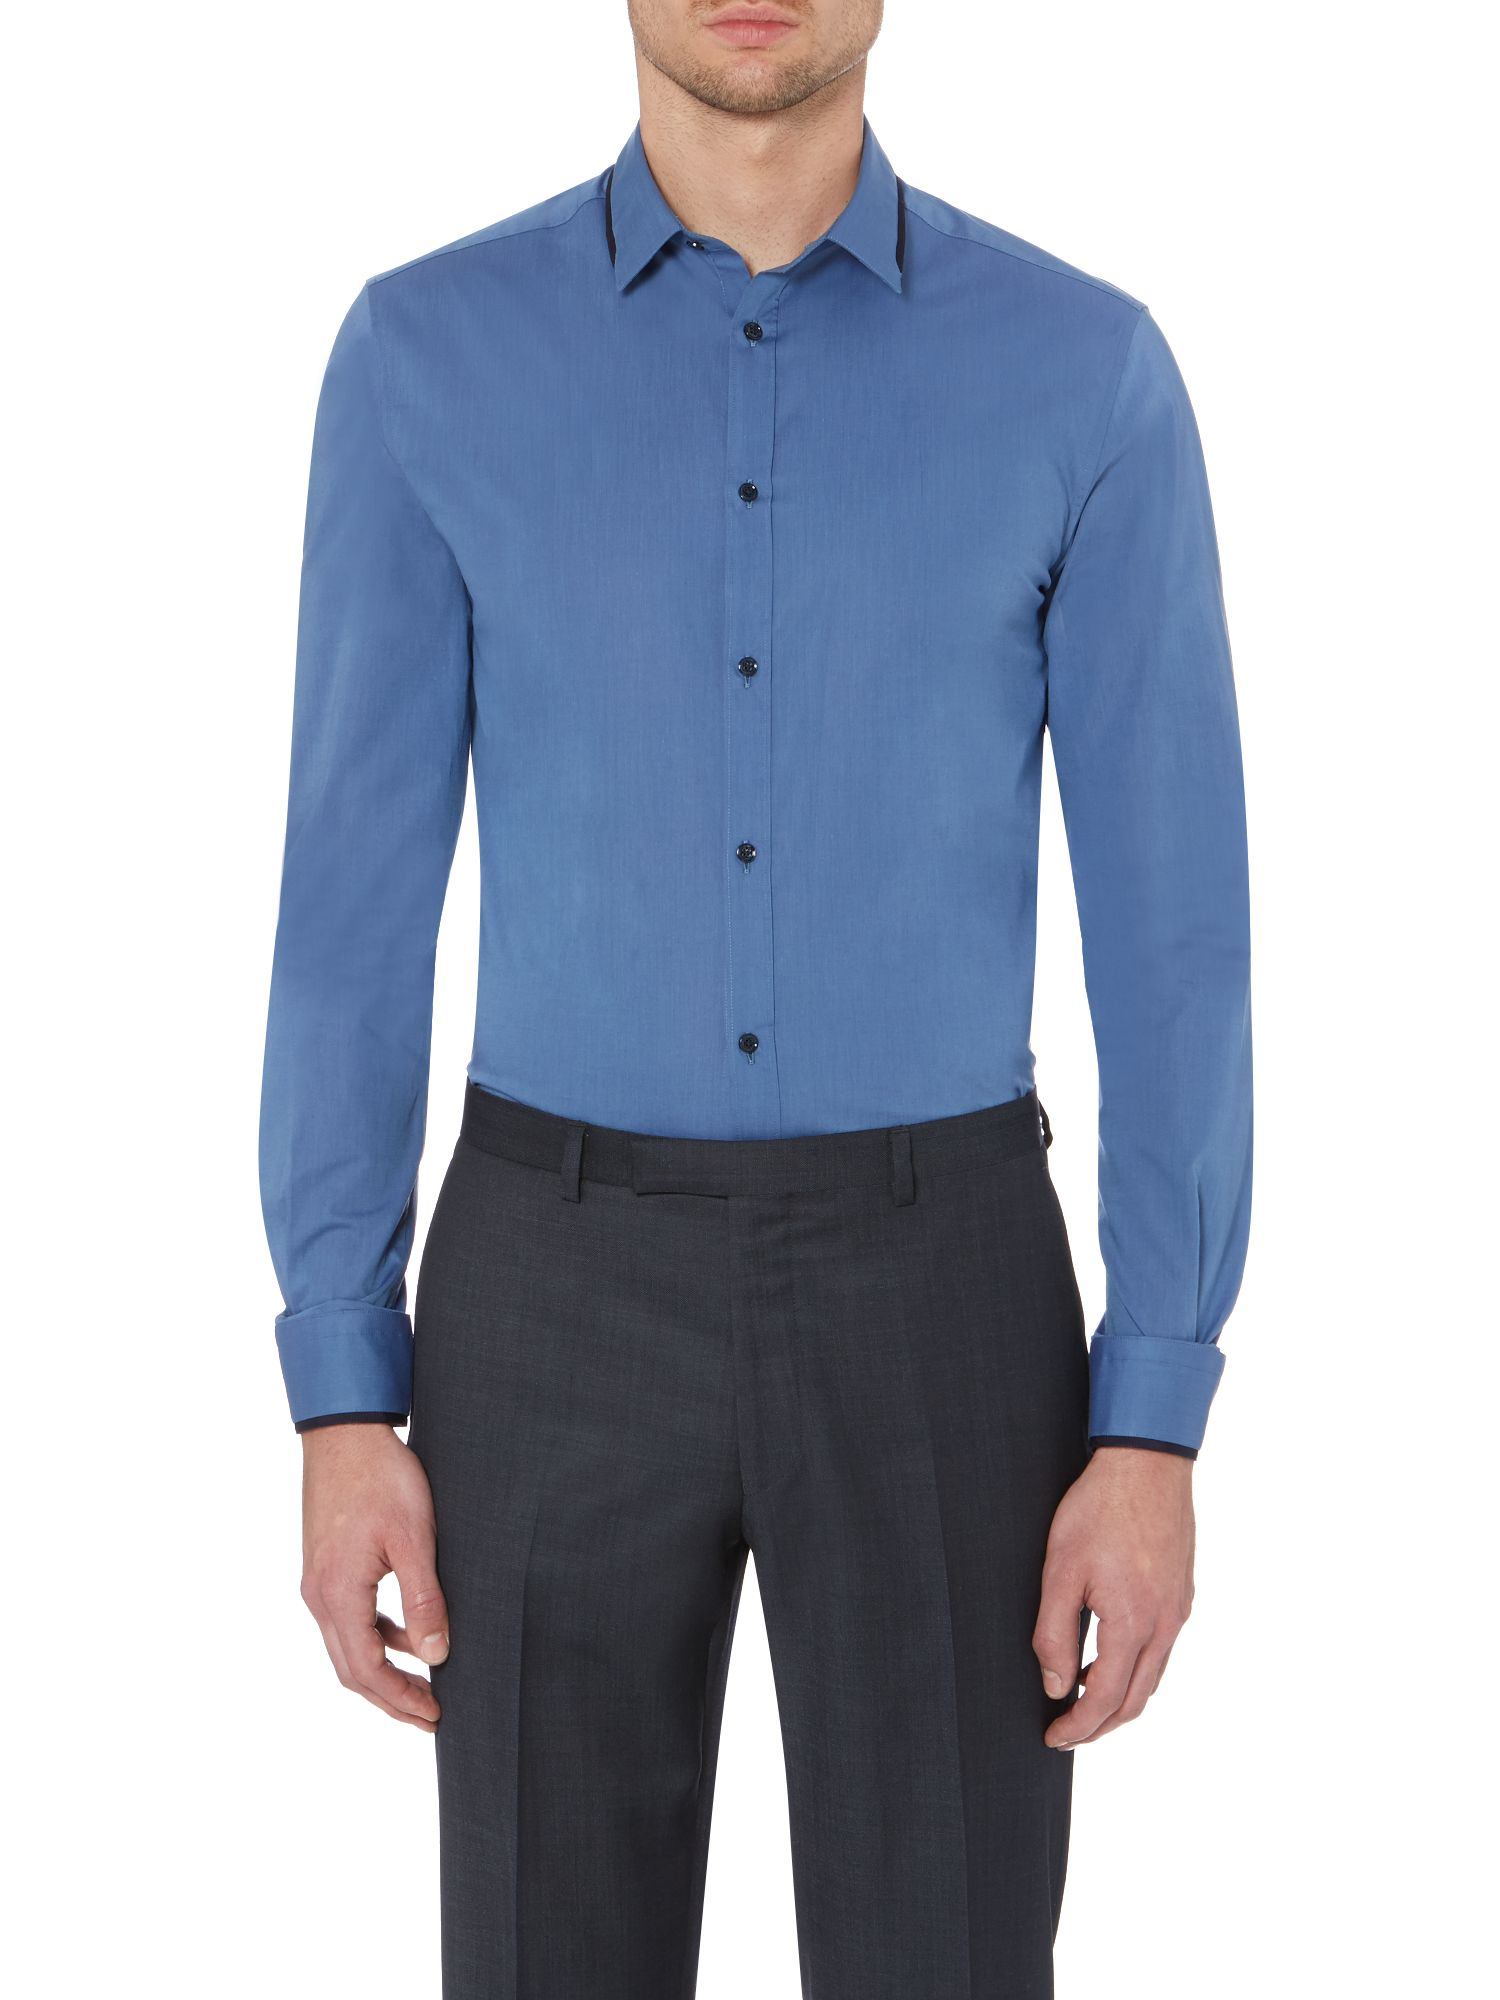 Milton collar and cuff grossgrain trim shirt